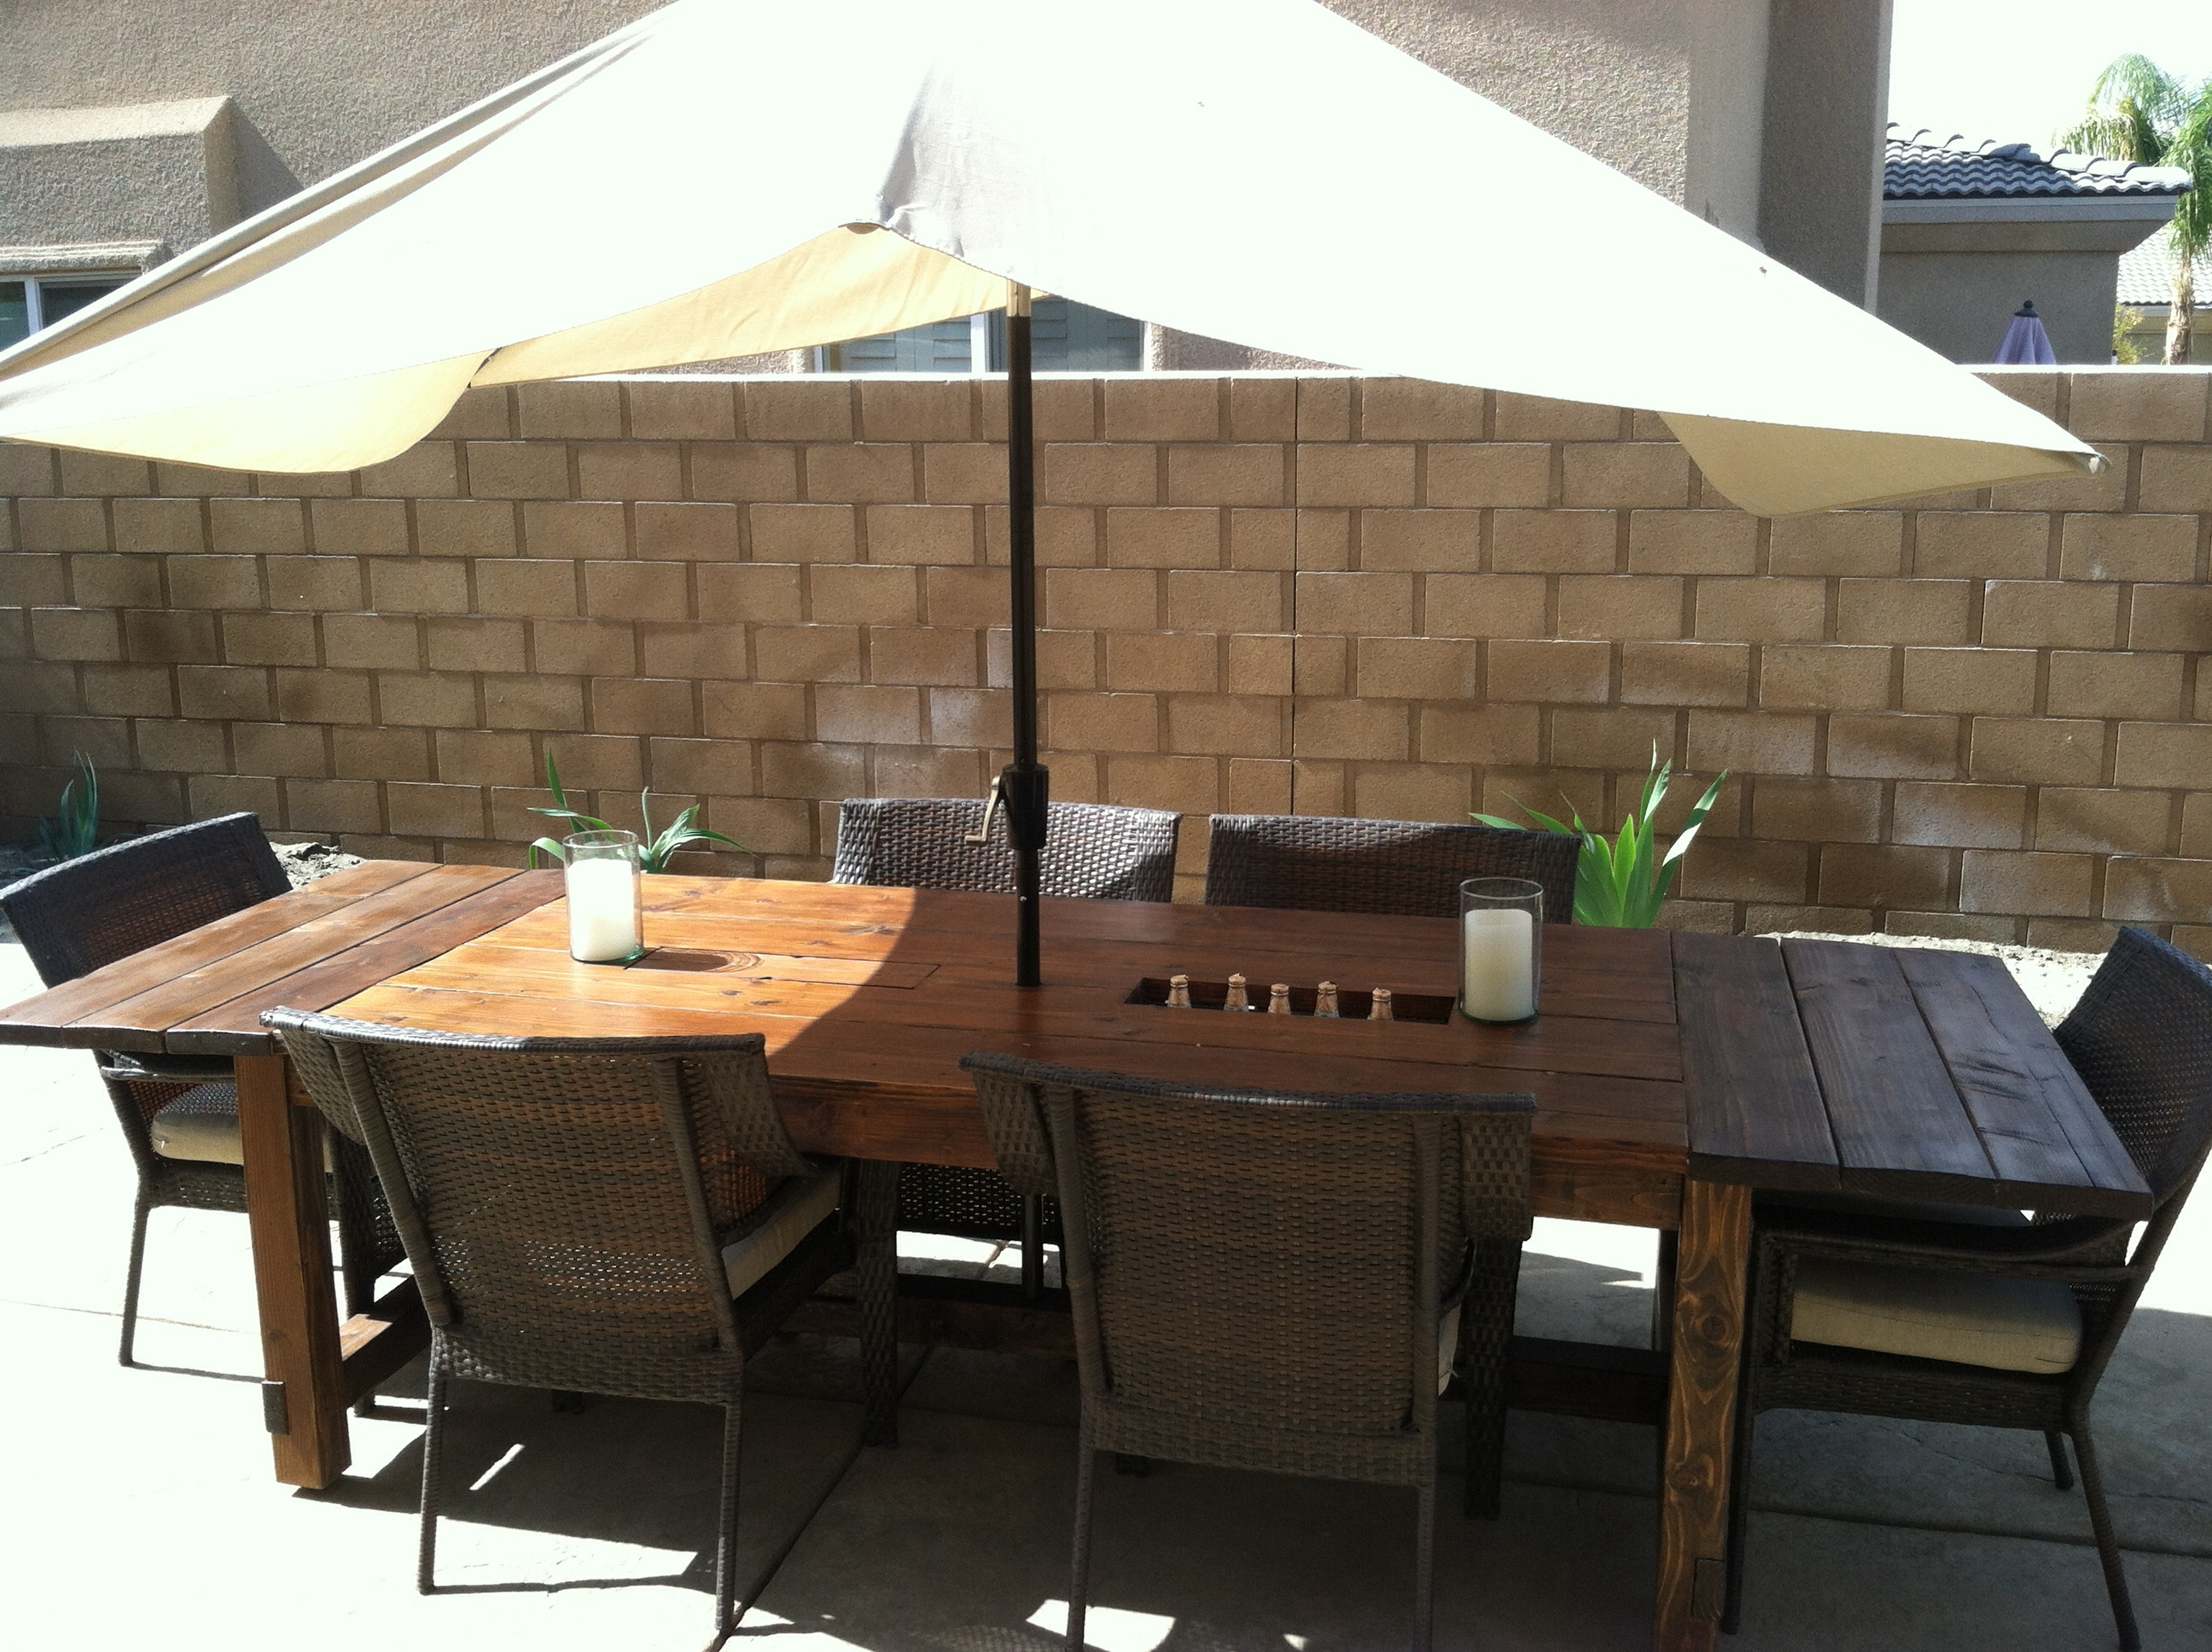 Preferred Walmart Patio Table With Umbrella Hole Intended For Patio Furniture Sets With Umbrellas (View 15 of 20)